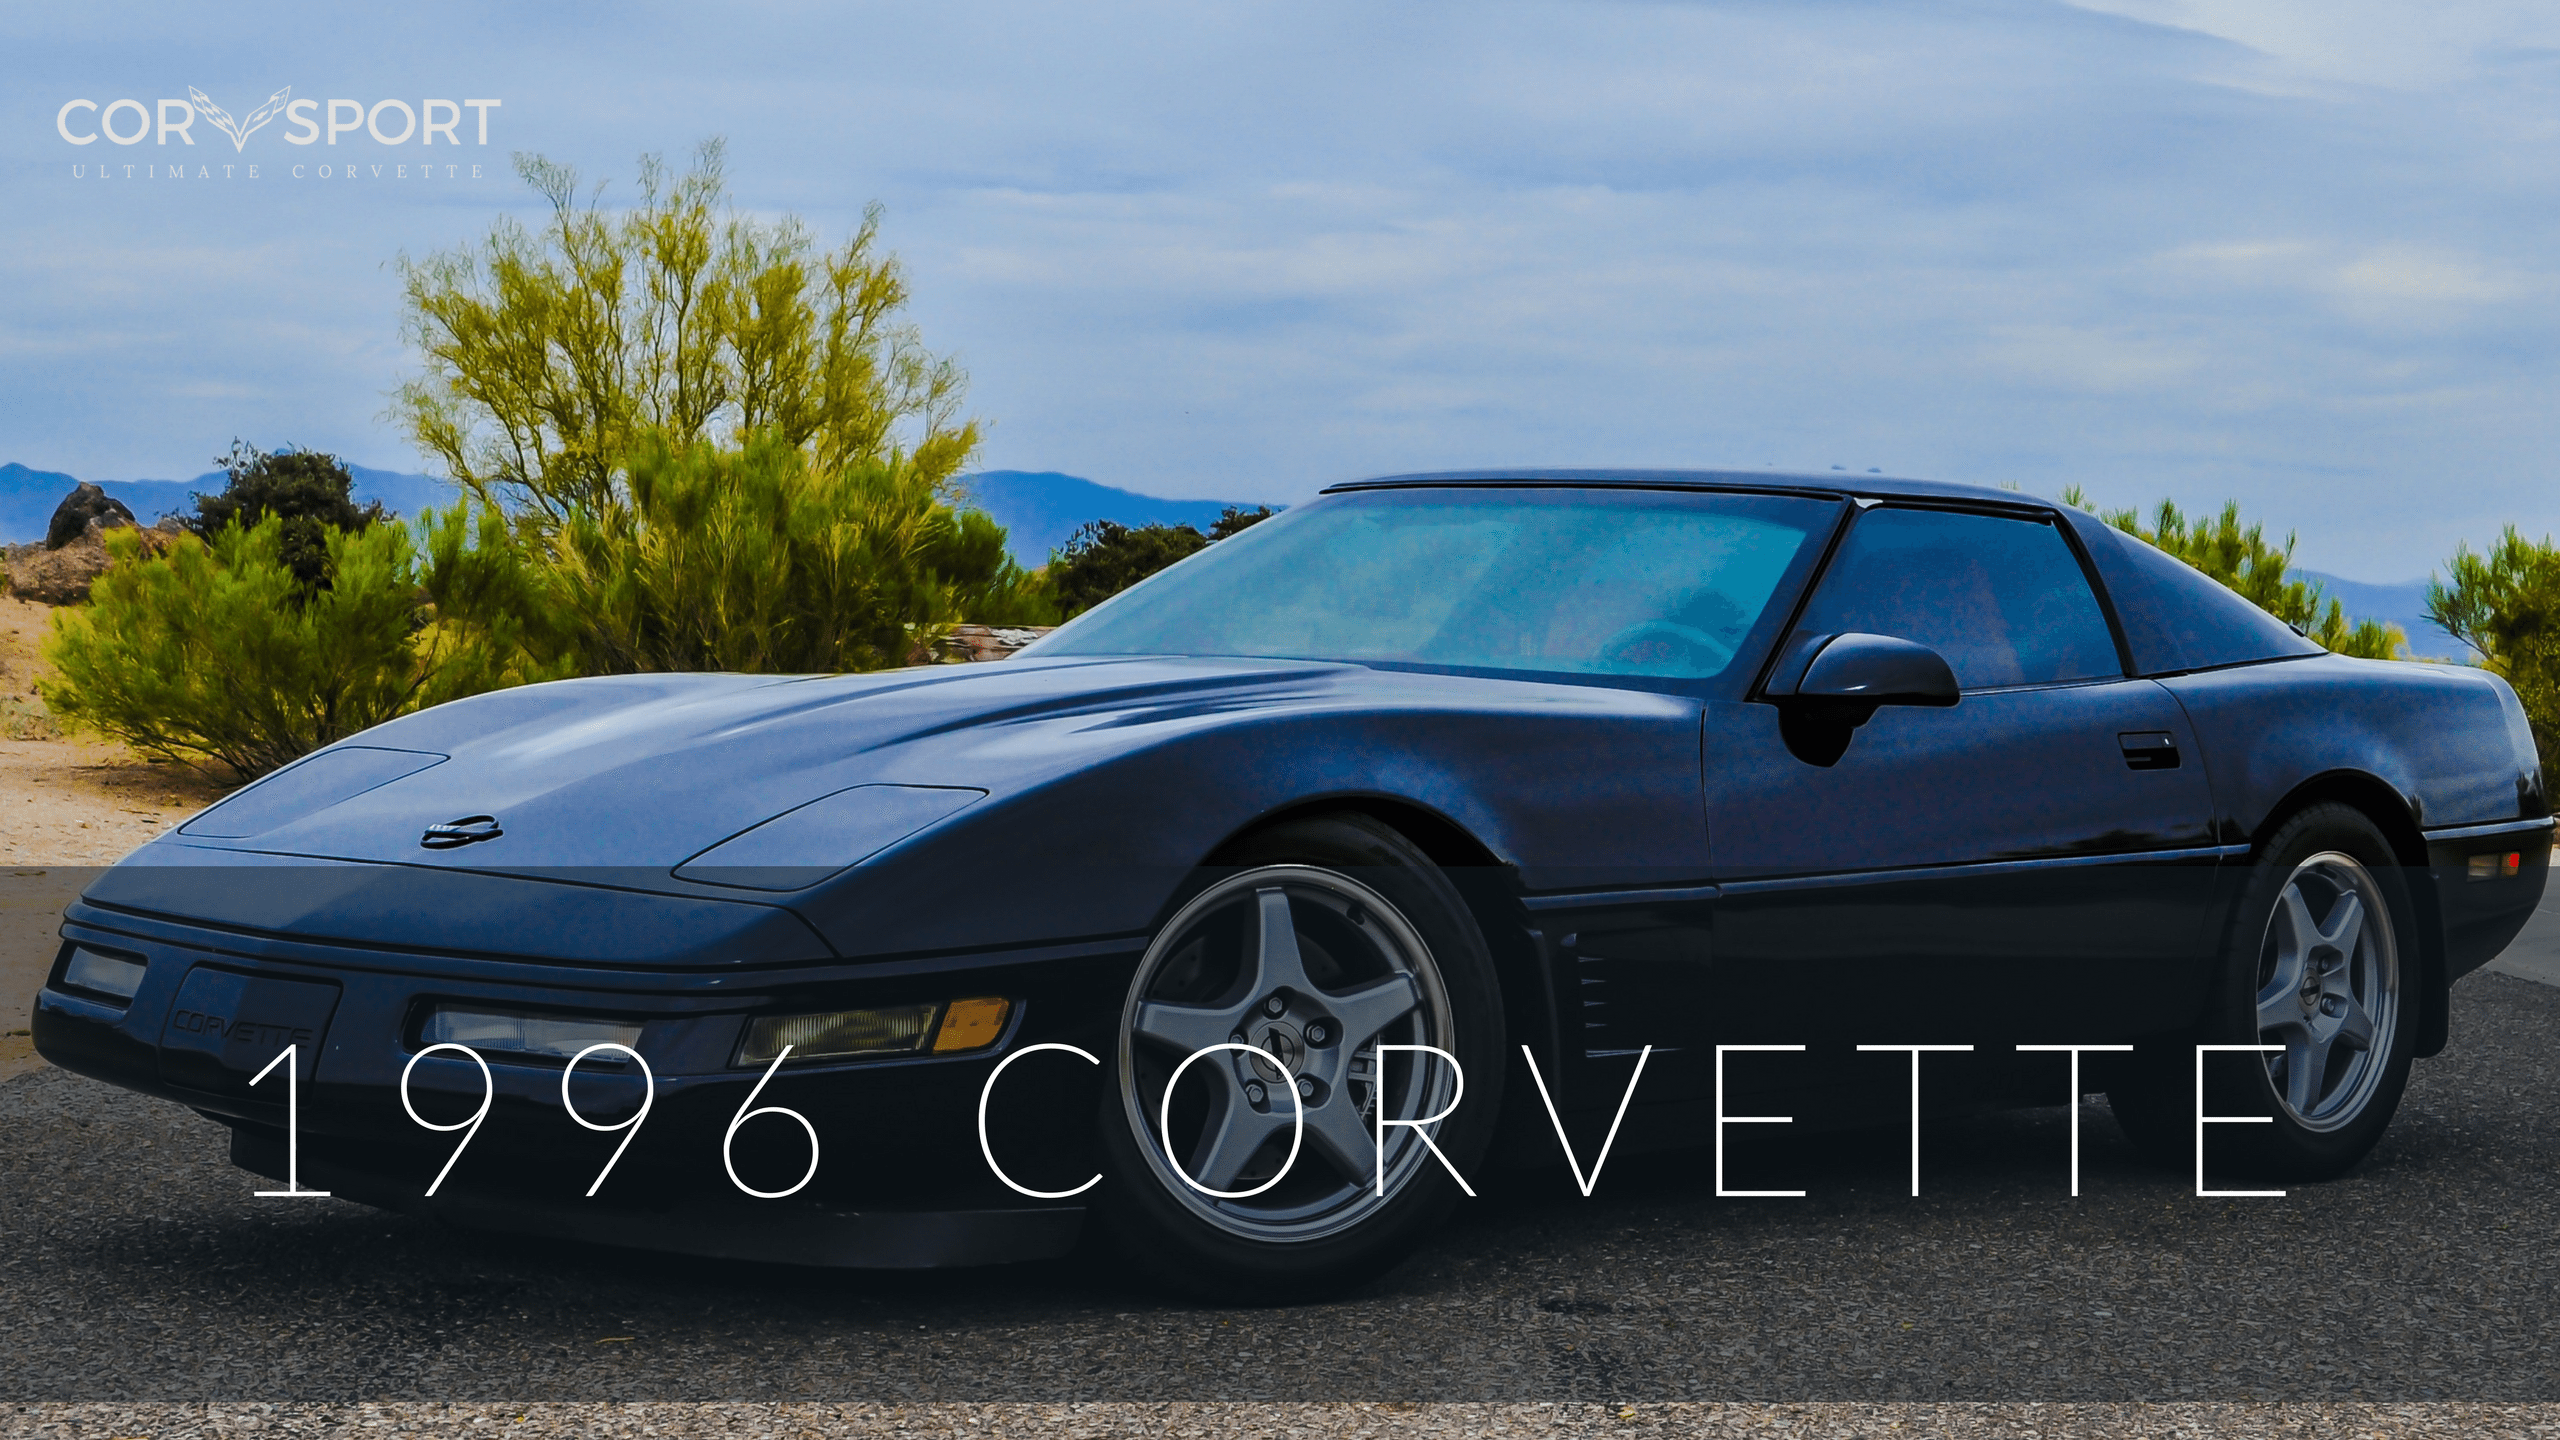 1996 C4 Corvette | Ultimate Guide (Overview, Specs, VIN Info